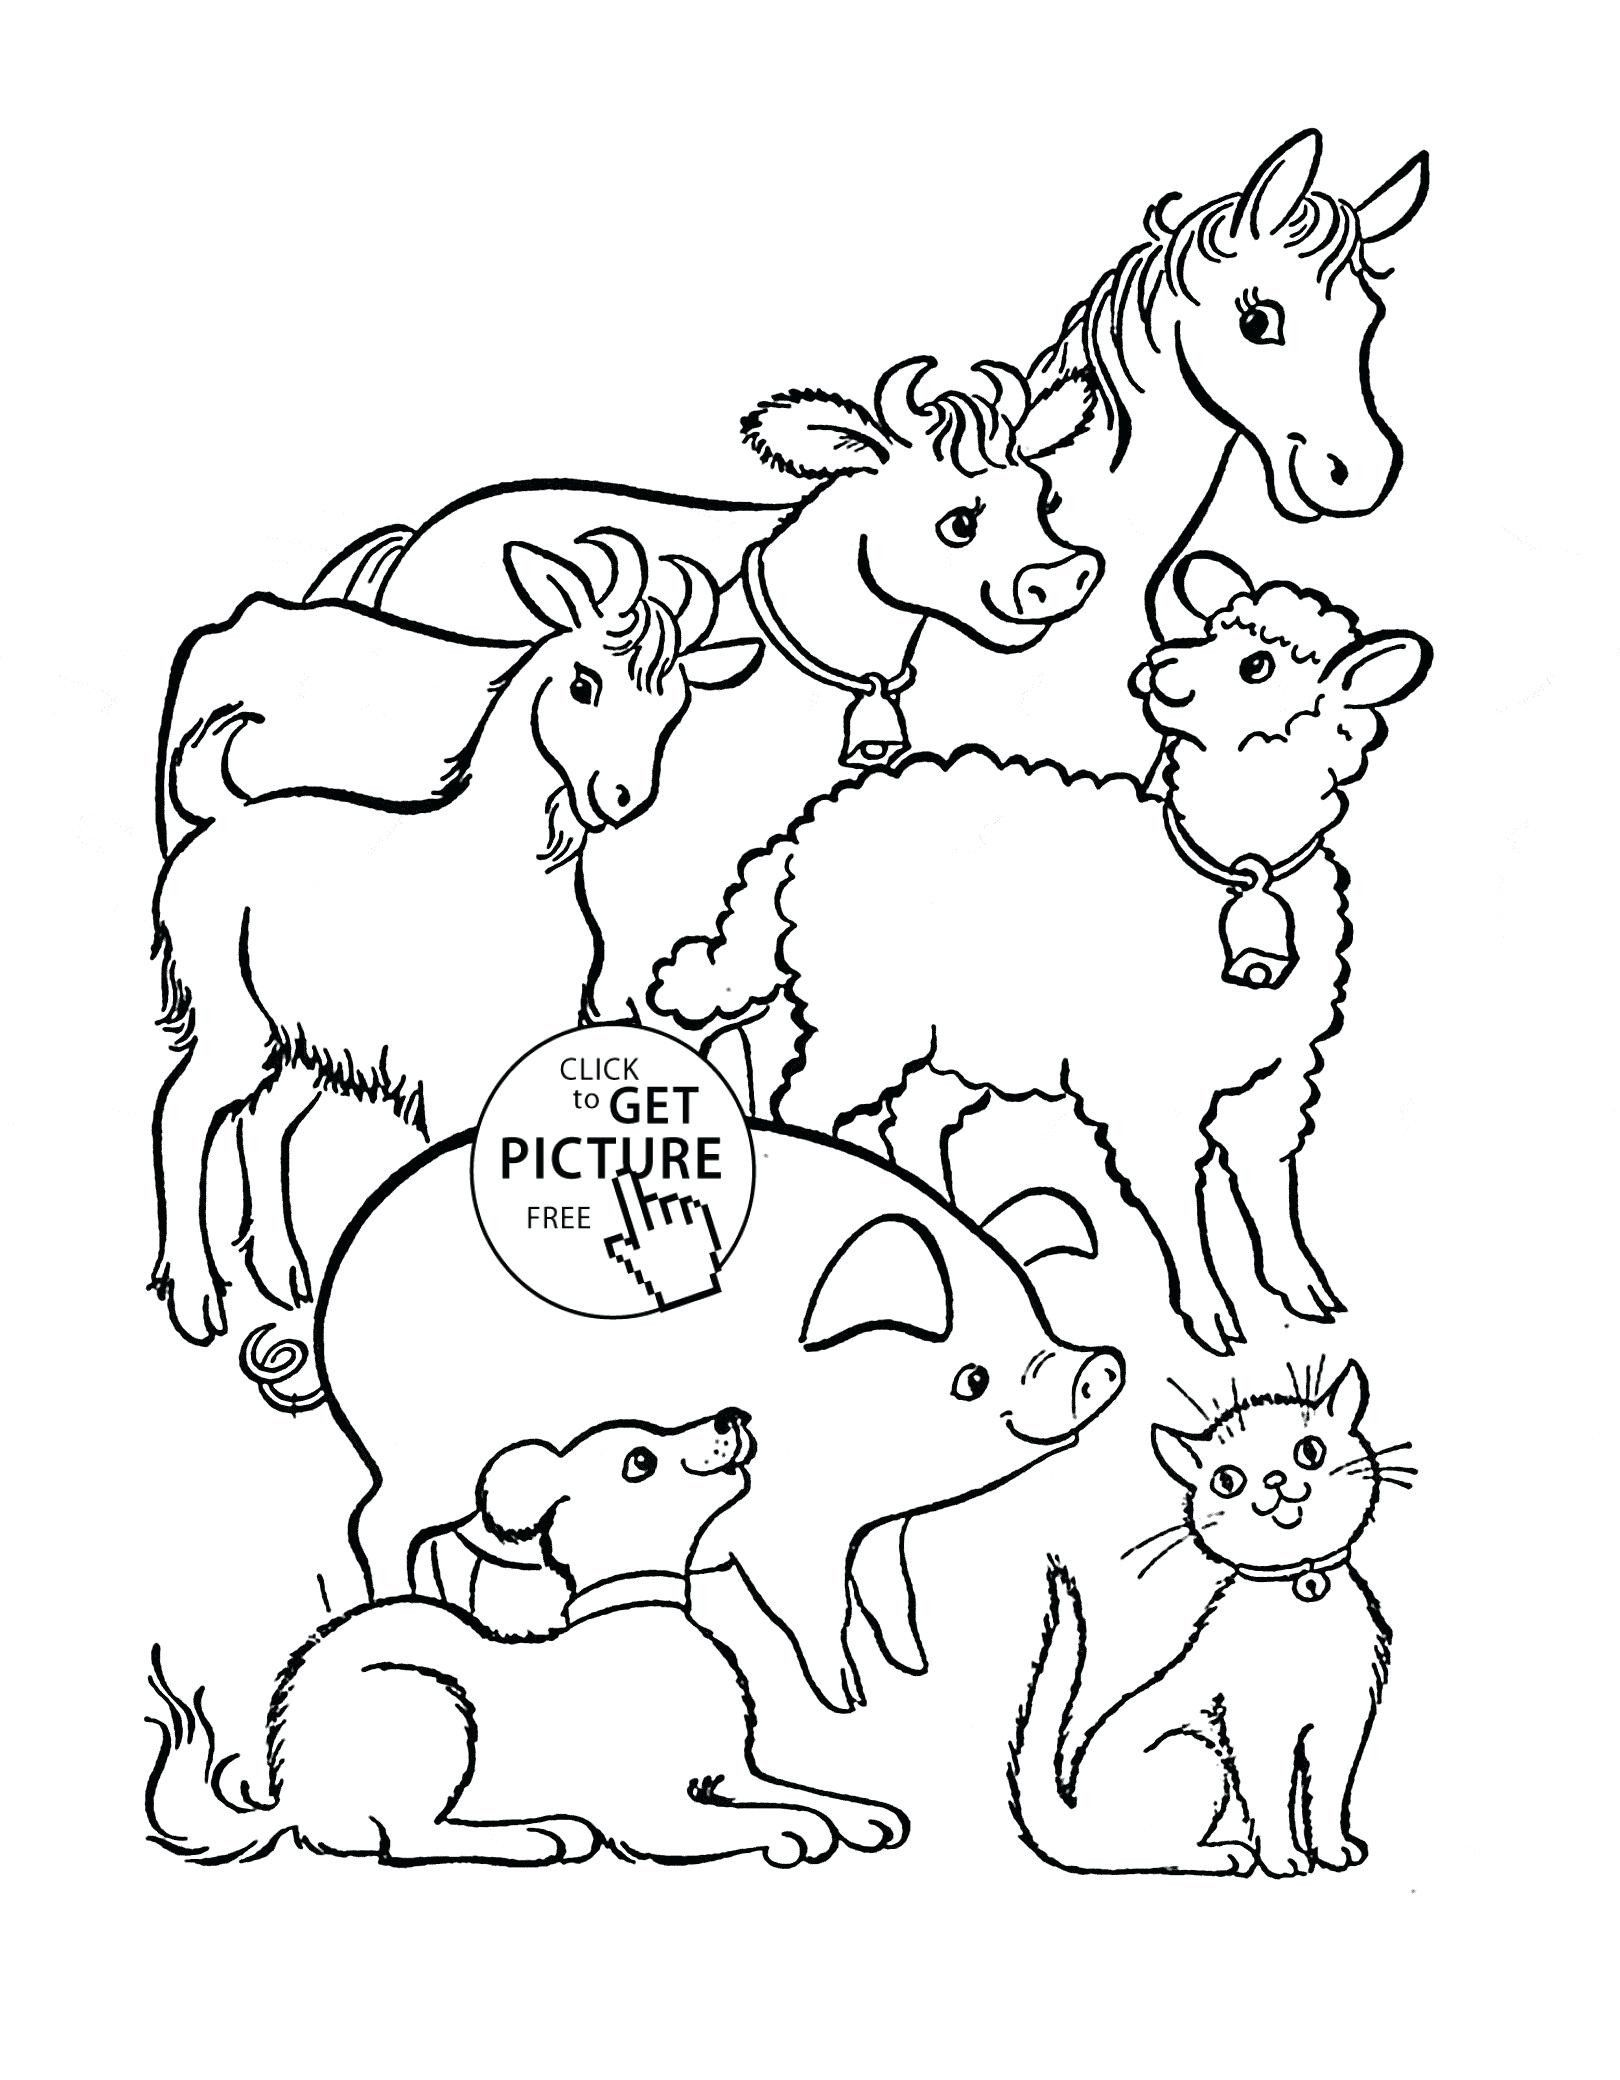 Farm Animal Coloring Pages Free Coloring Book Staggering Farm Animal Coloring Pages For In 2020 Farm Animal Coloring Pages Horse Coloring Pages Animal Coloring Pages